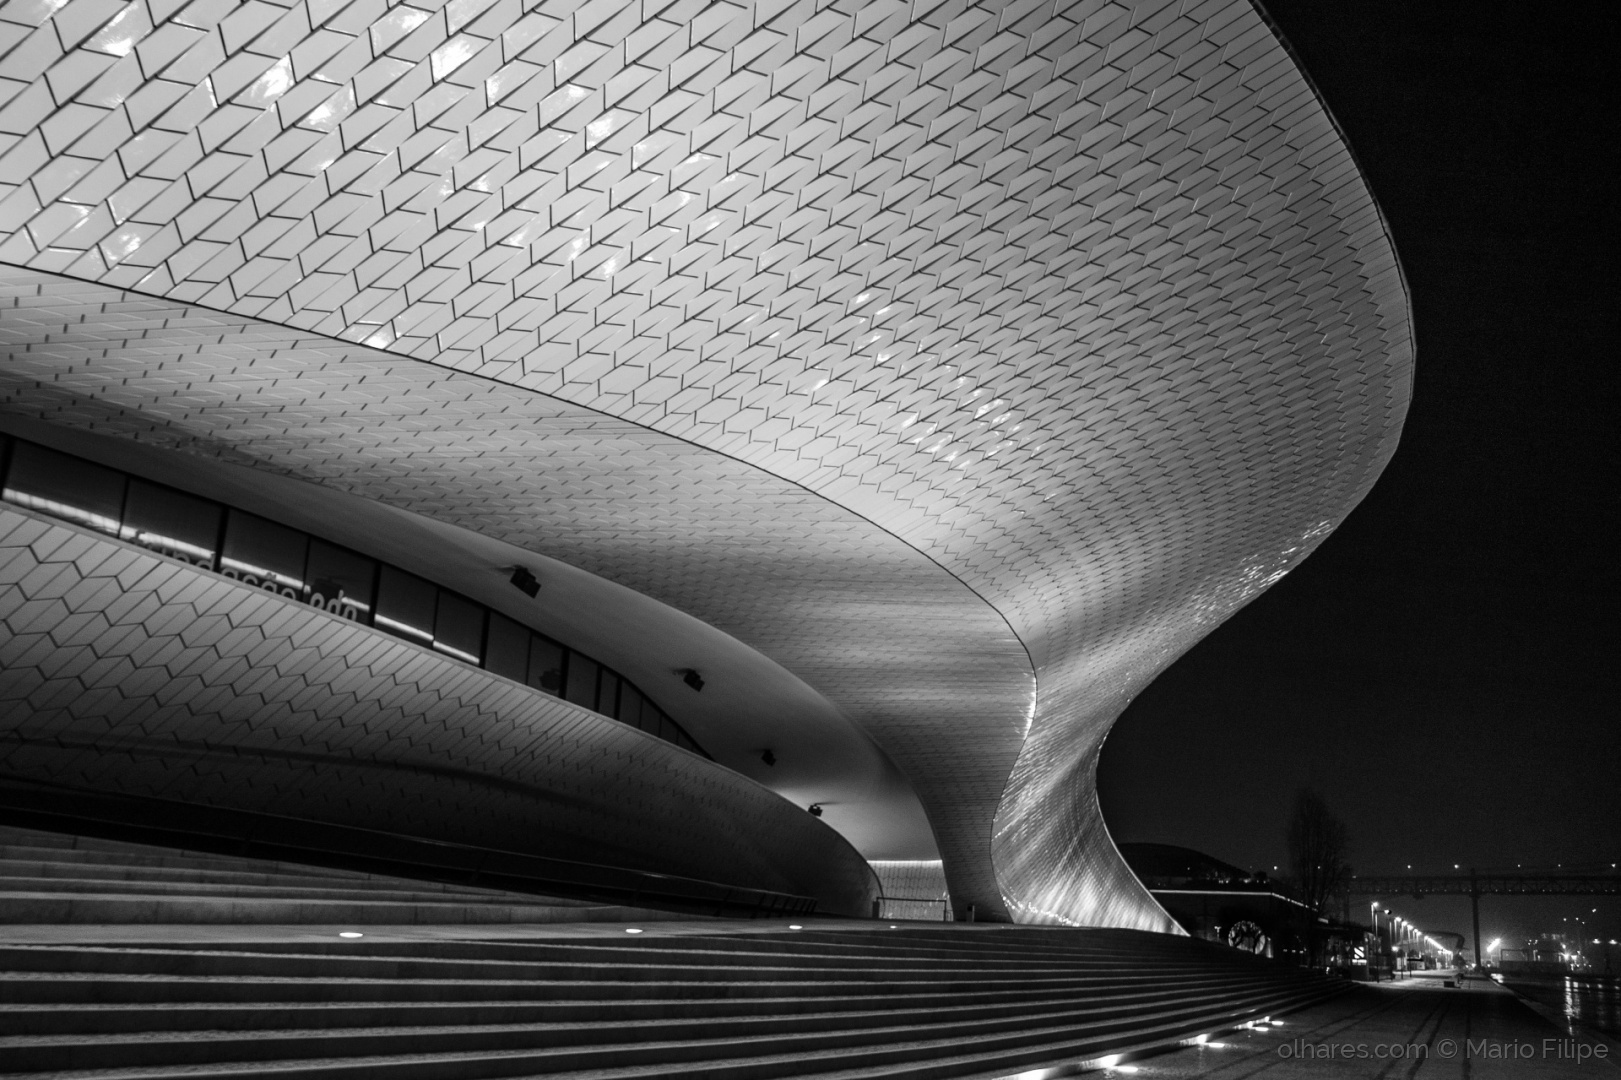 © Mario Filipe lines and curves of architecture (11) MAAT